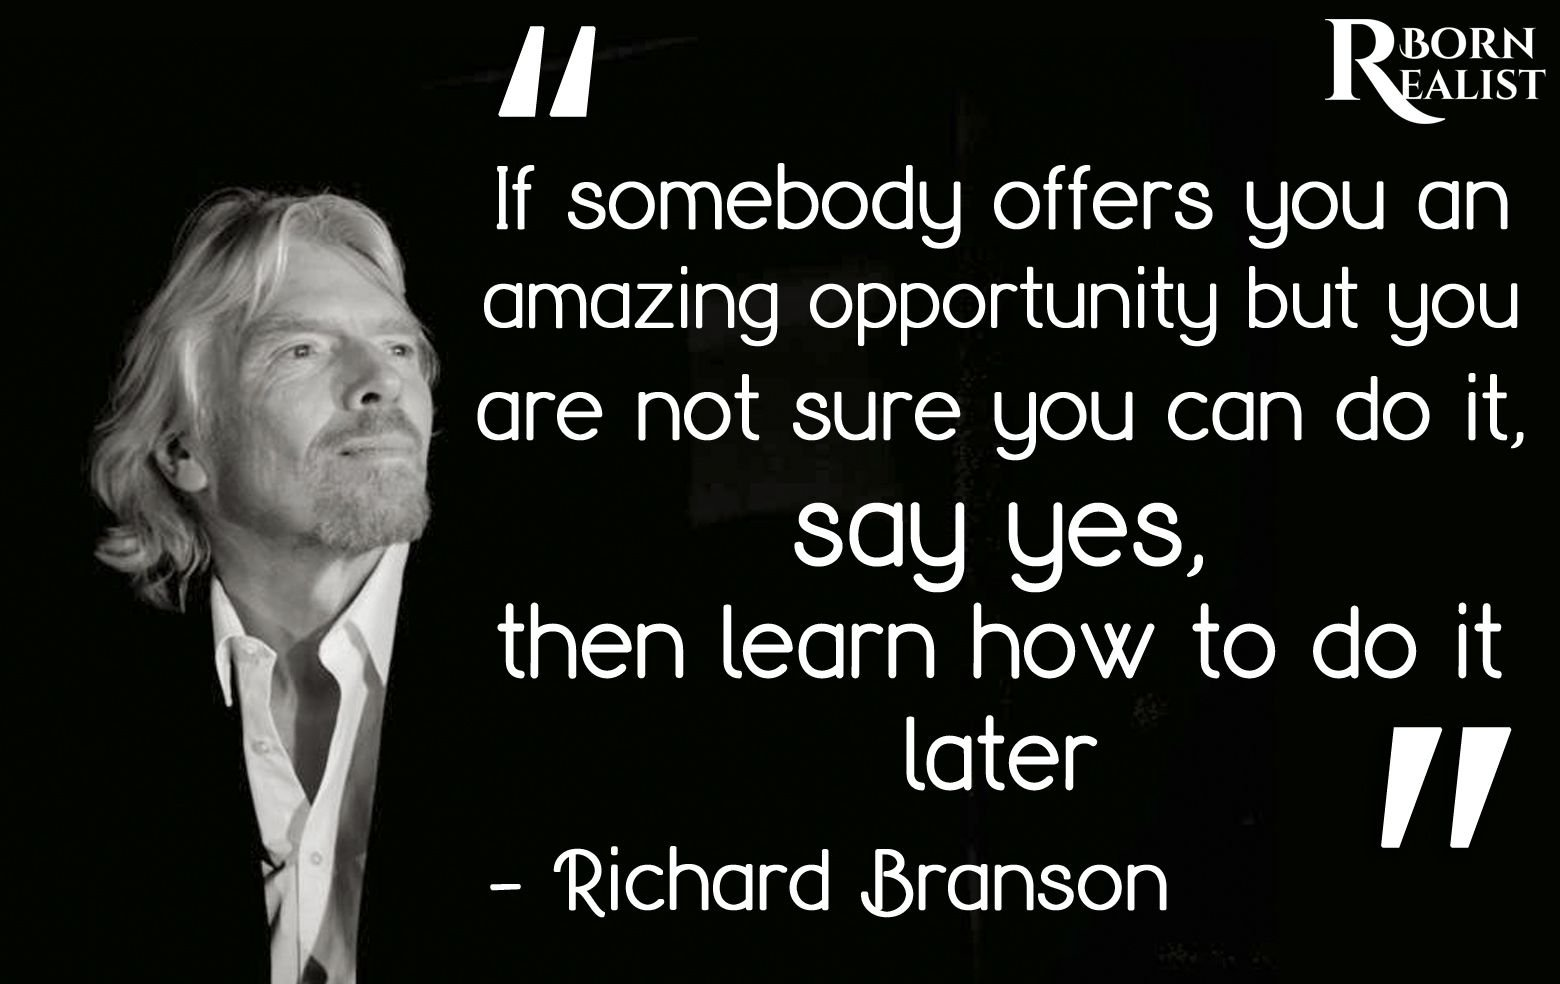 If somebody offers you an amazing opportunity but you are not sure you can do it, say yes, then learn how to do it later. – Richard Branson [1560X984]